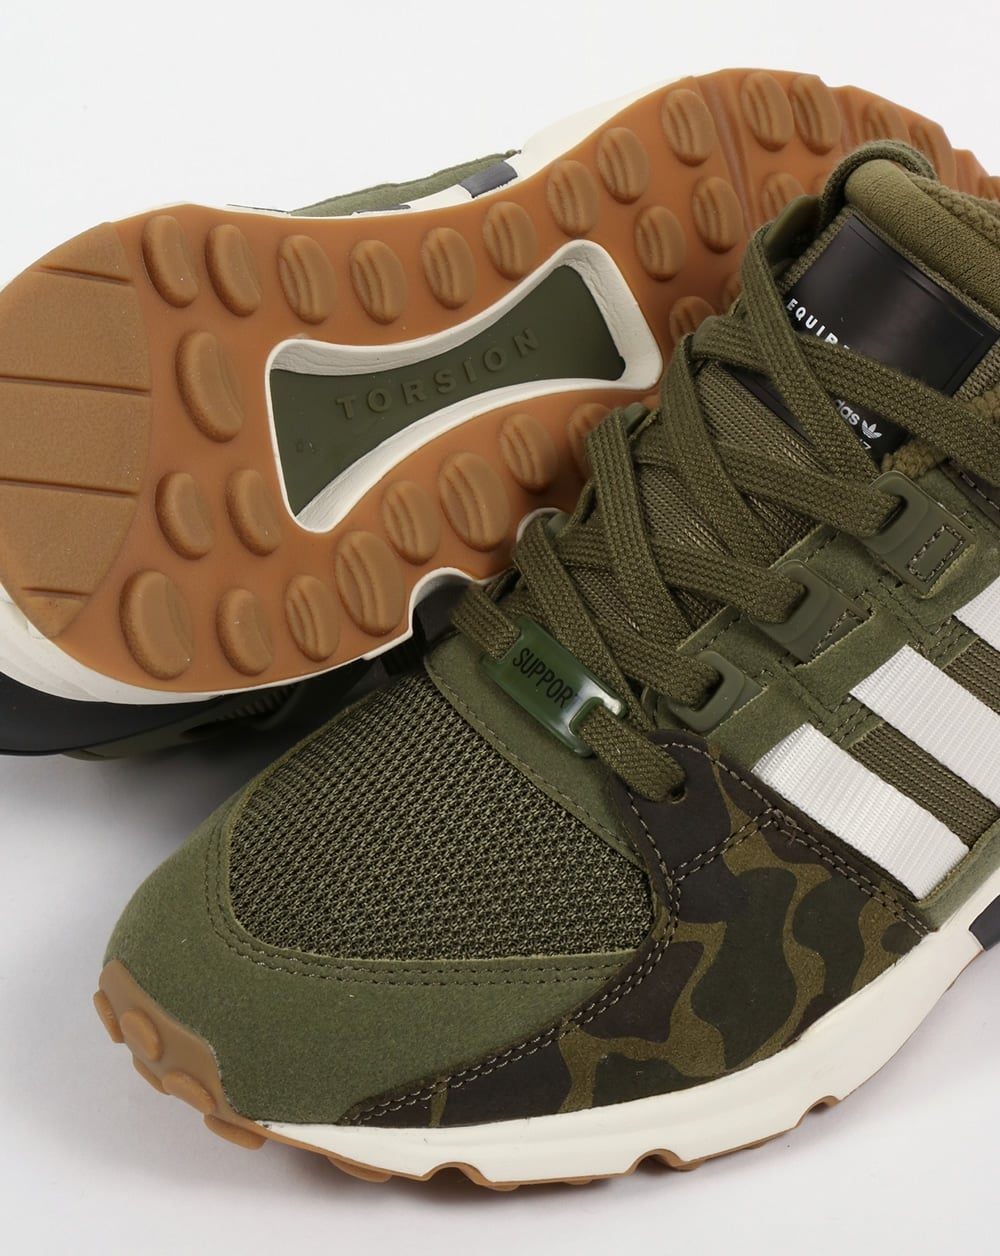 huge selection of d1577 0fae0 Adidas EQT Support RF Trainers Olive Cargo/White